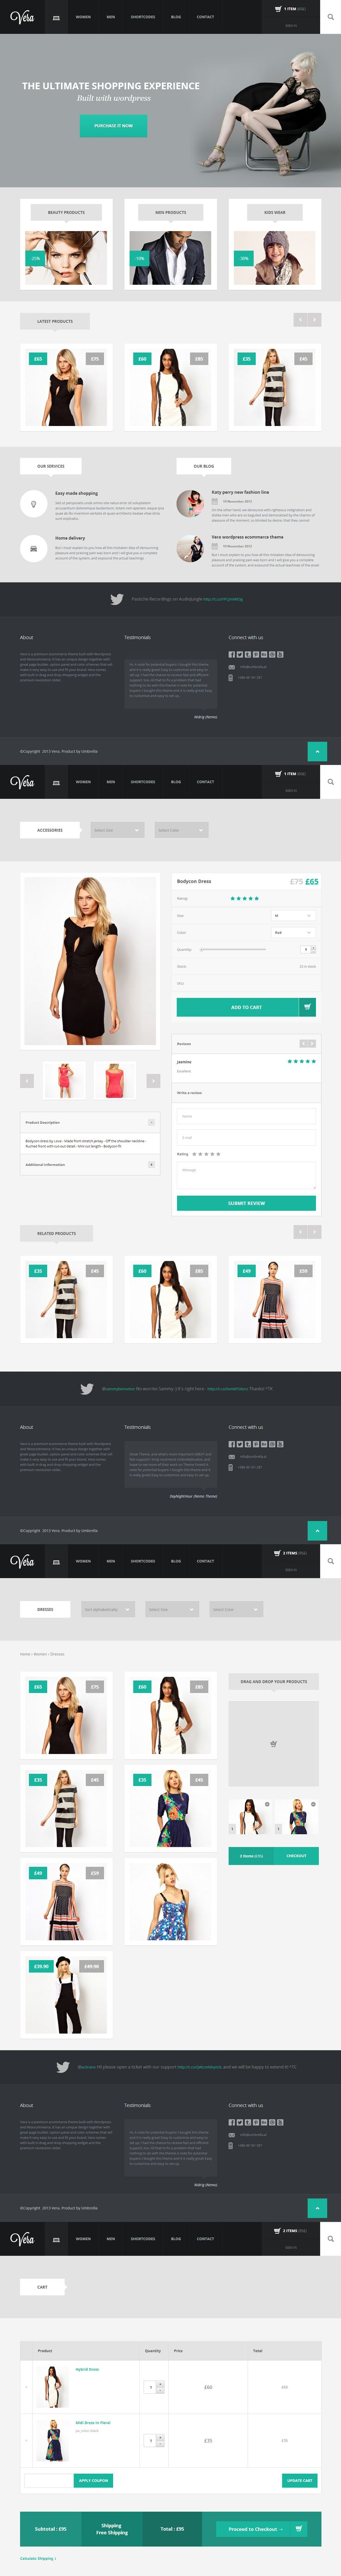 Vera Shop by Arian Selimaj  - http://www.behance.net/gallery/Vera-Fashion-Shop/6723633 - http://themeforest.net/item/vera-responsive-ecommerce-theme-for-wordpress/4158207